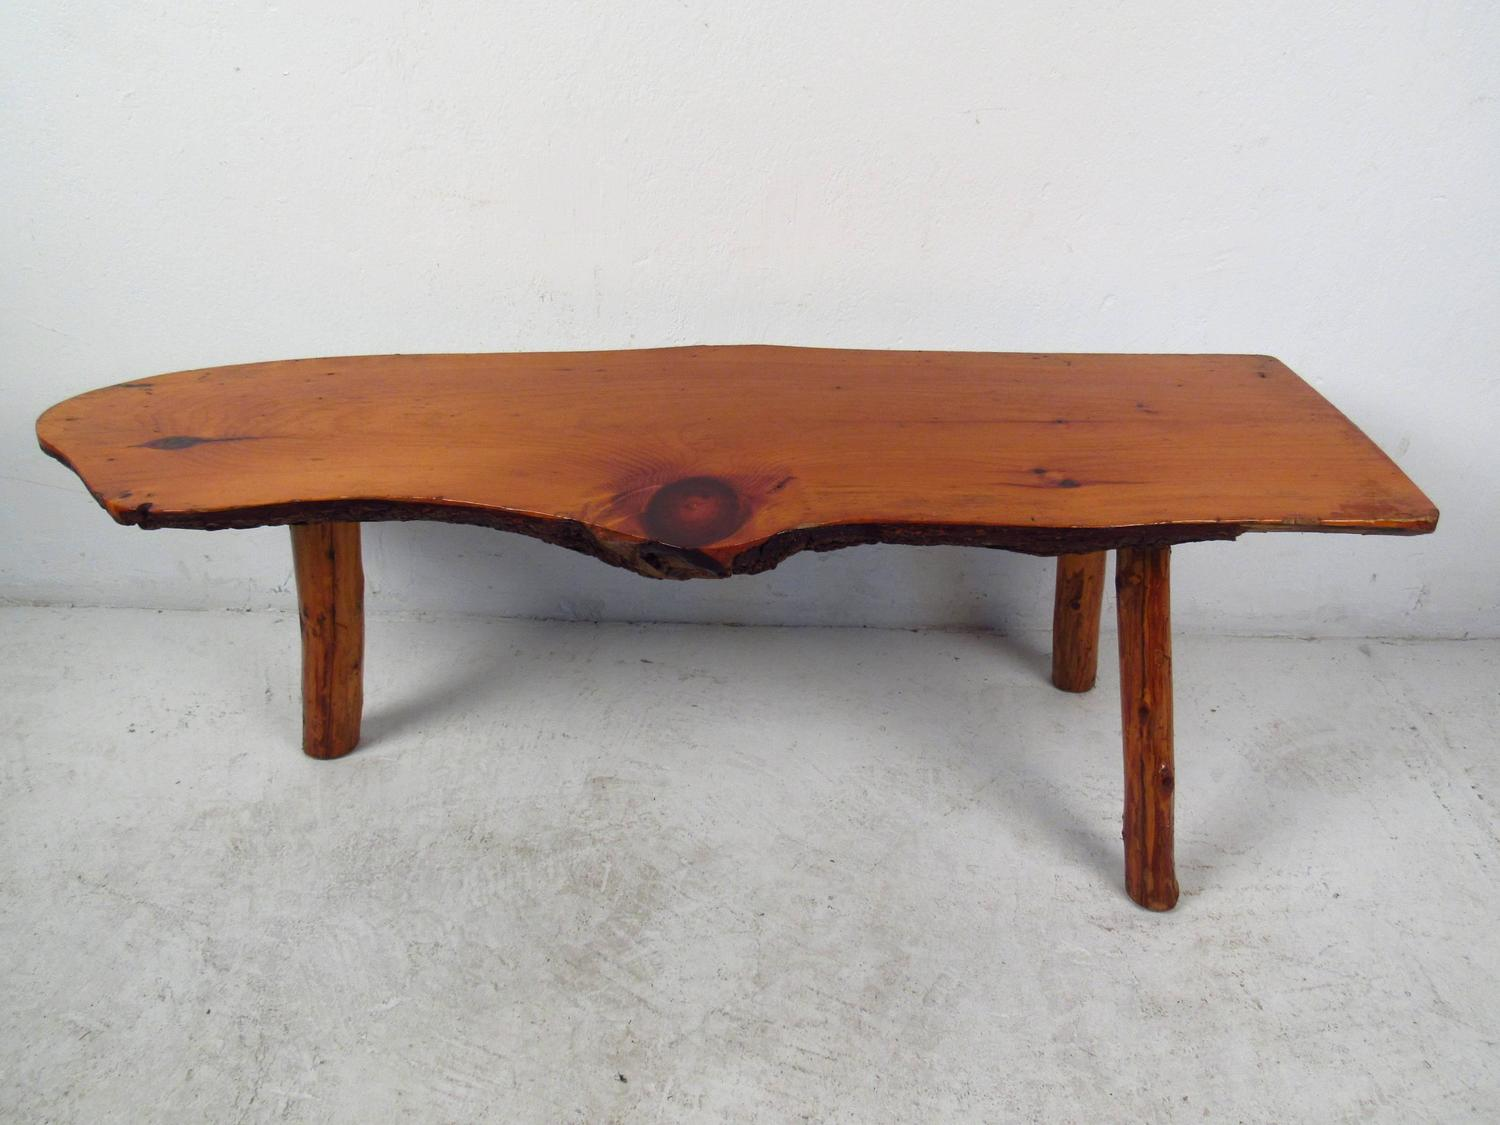 Vintage rustic tree trunk coffee table for sale at 1stdibs Old trunks as coffee tables